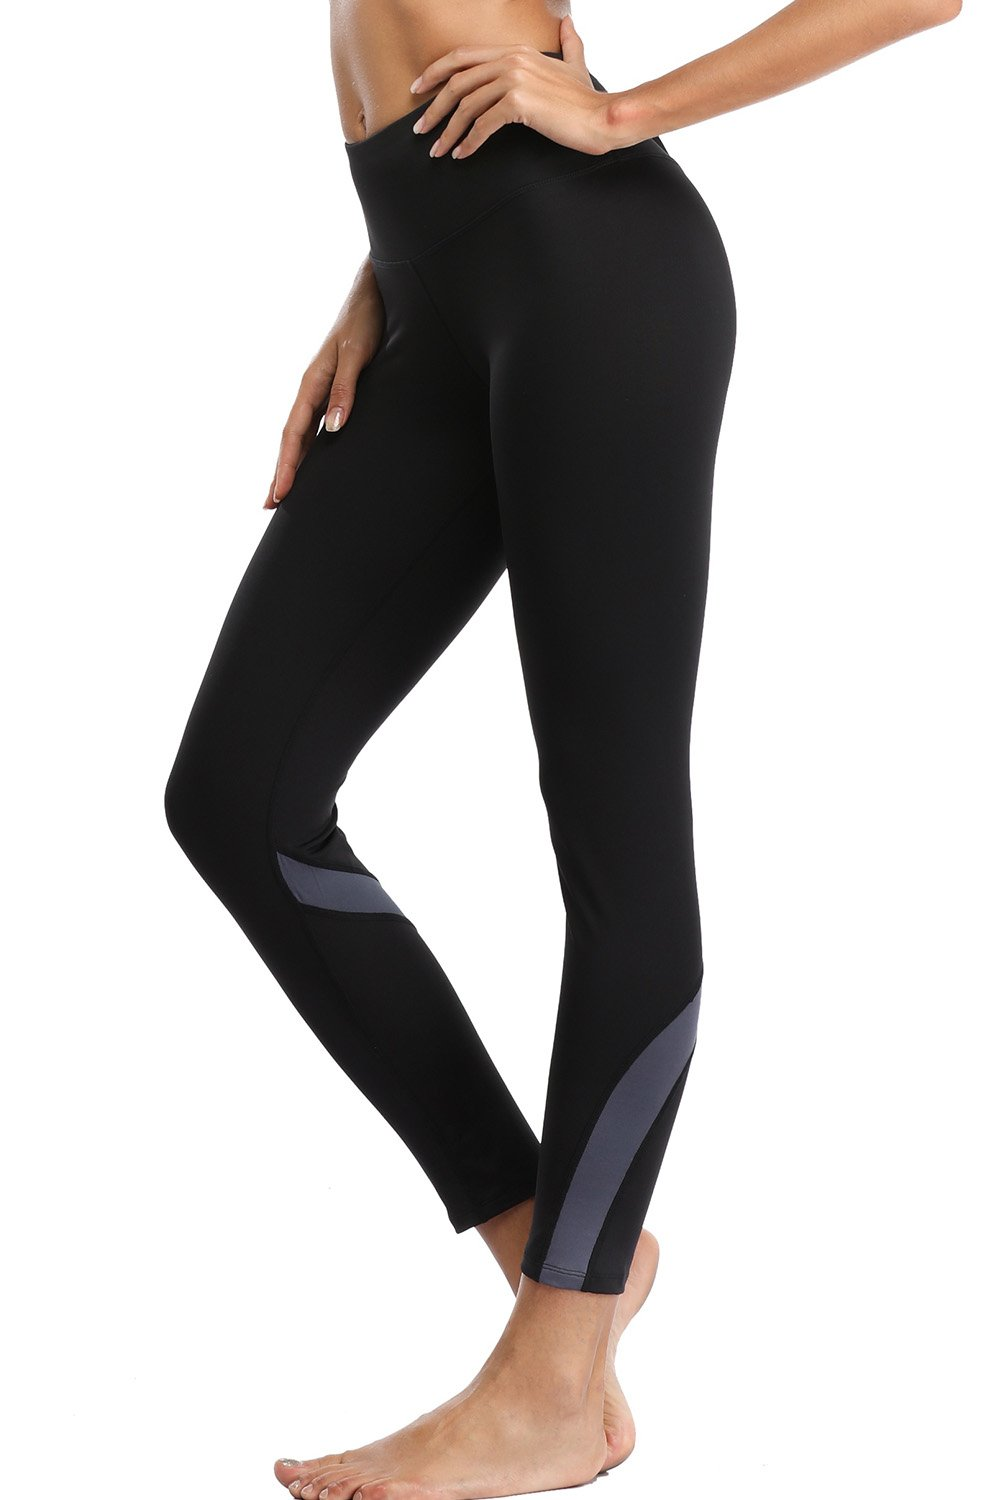 Vegatos Women's High Waisted Yoga Pants Active Compression Workout Leggings